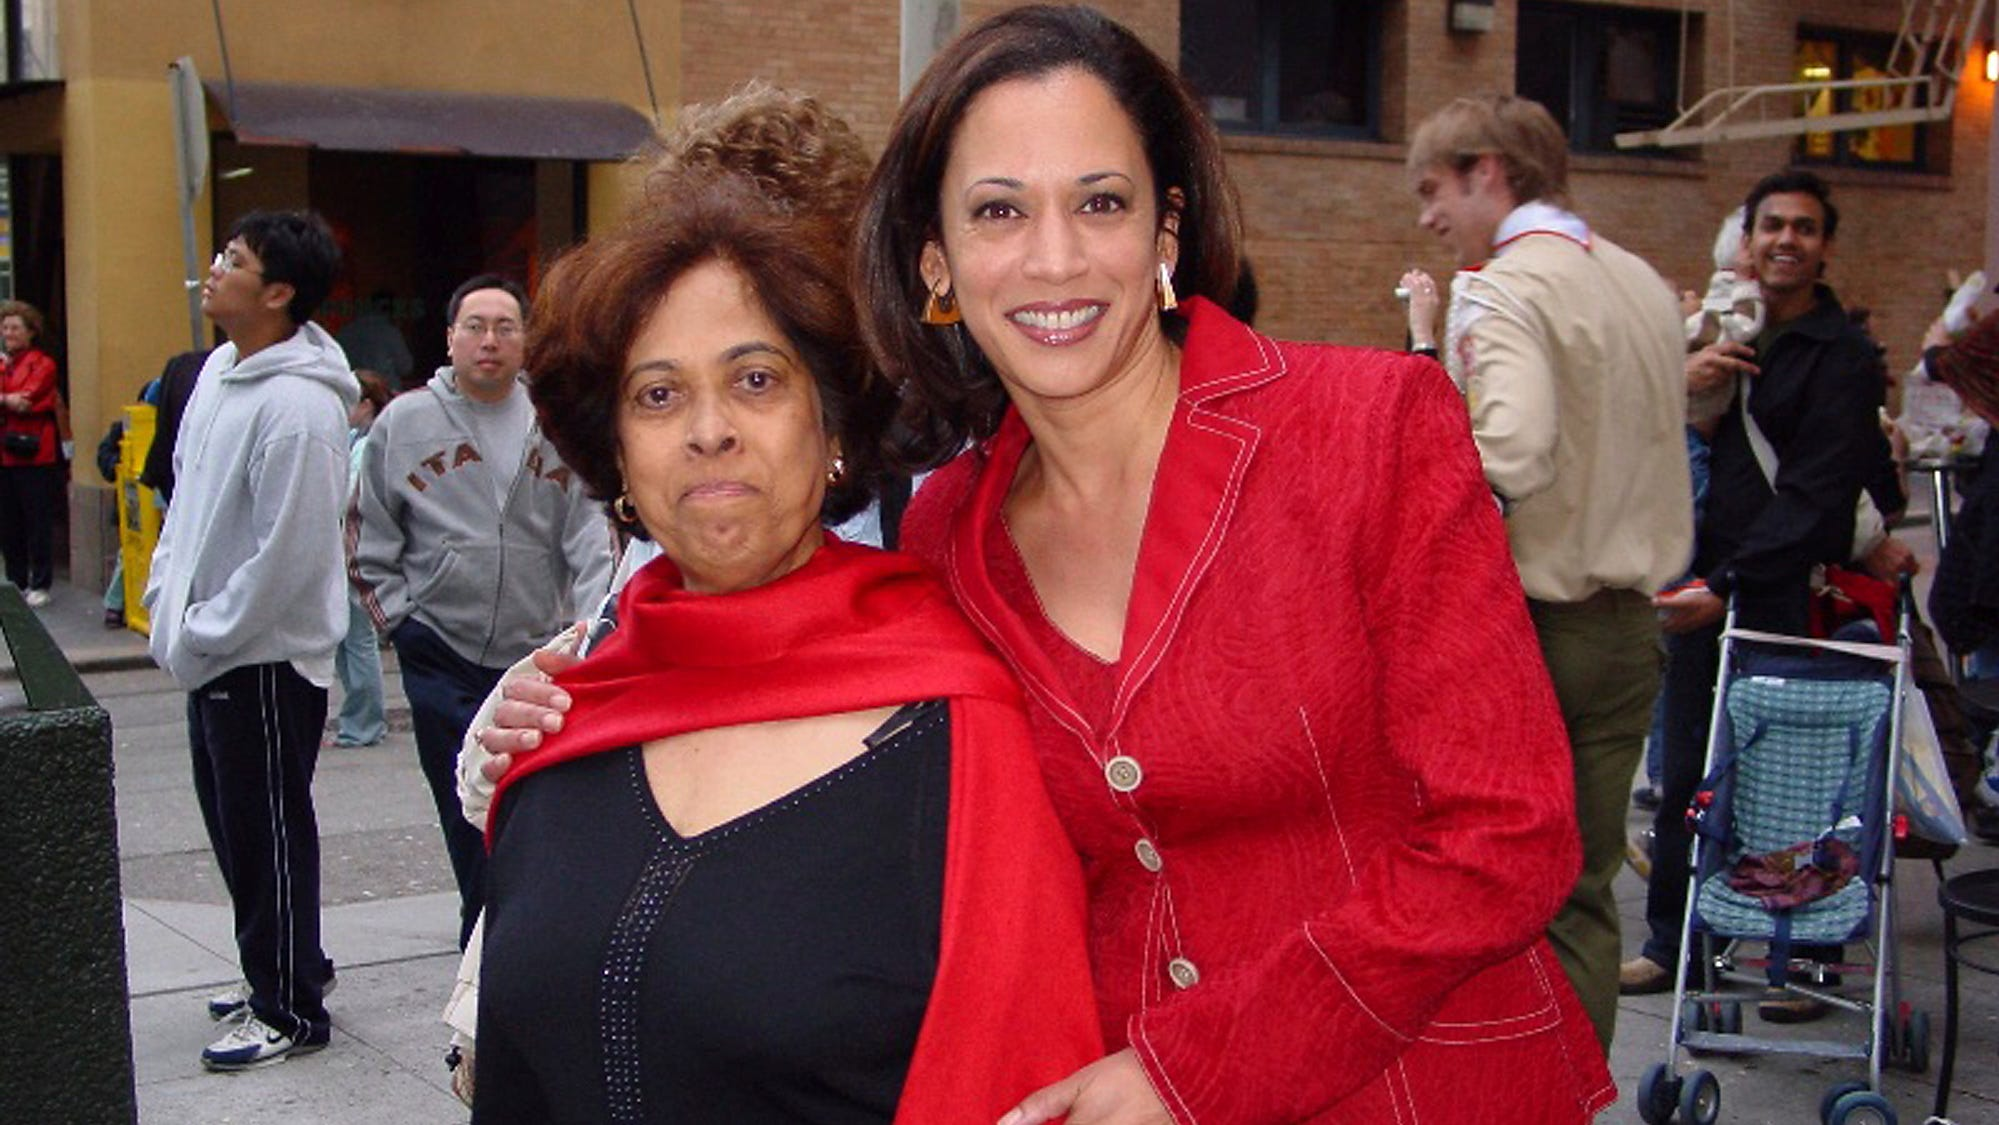 Kamala Harris As Biden Vp Makes Indian Americans Like Me Feel Embraced